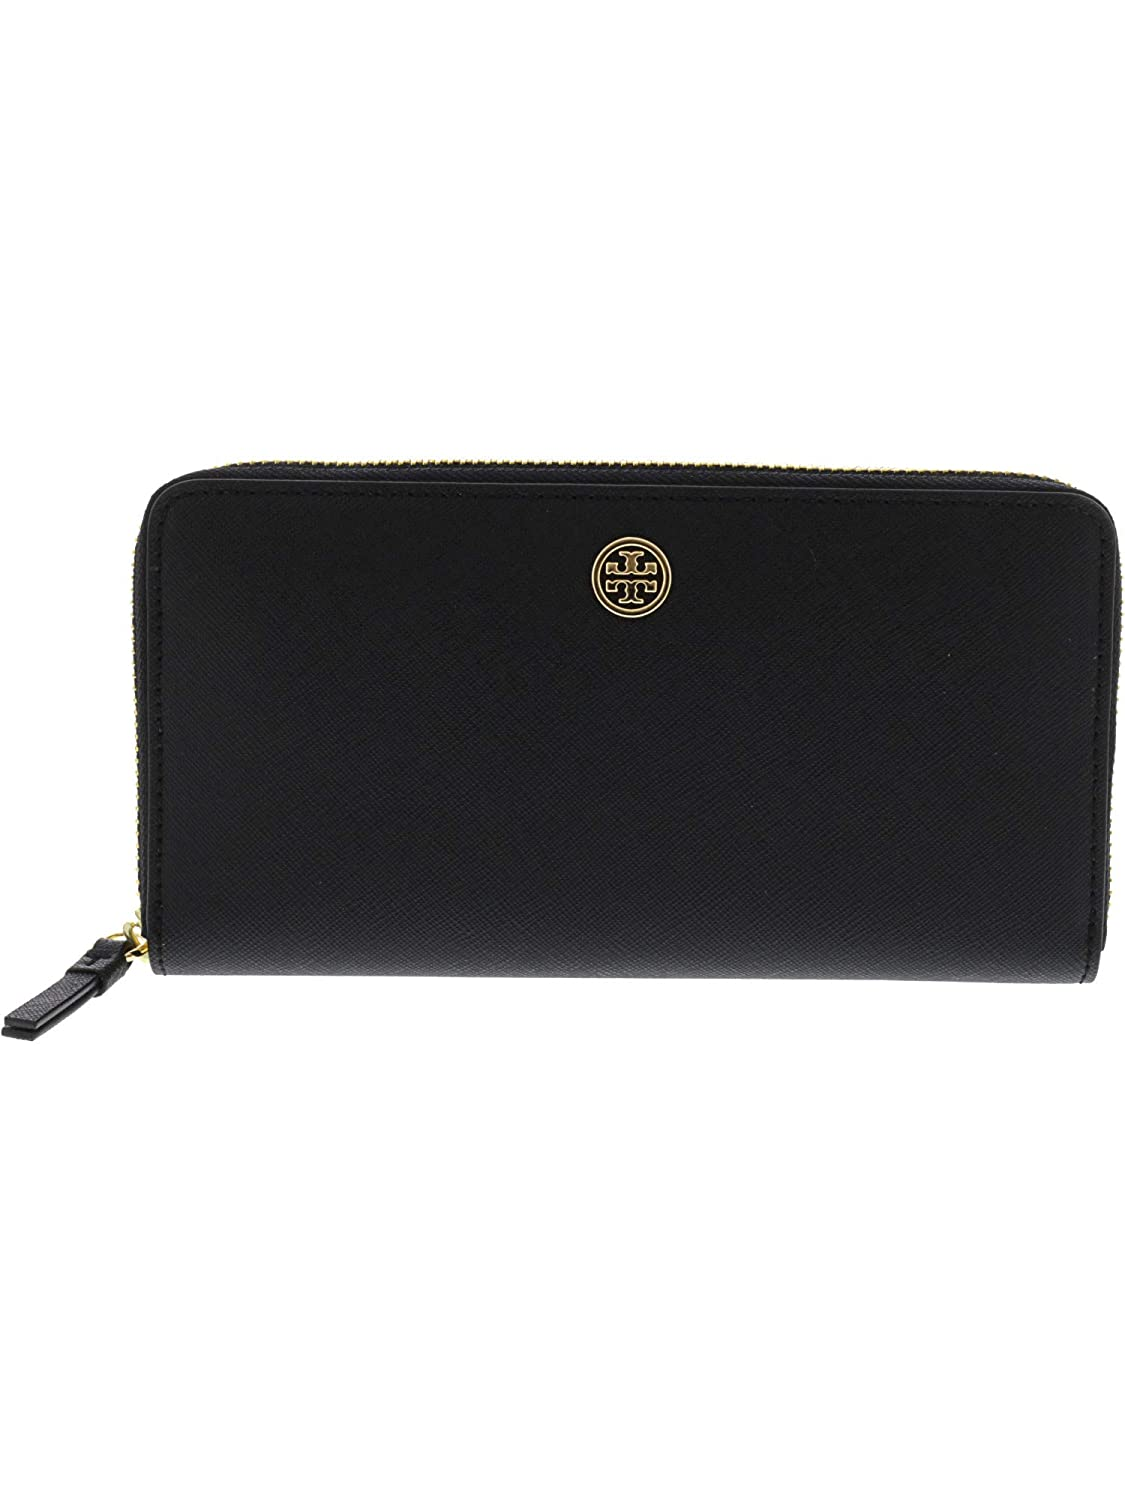 fd737a690b5 Amazon.com: Tory Burch Women's Robinson Zip Continental Wallet Black One  Size: Tory Burch: Shoes